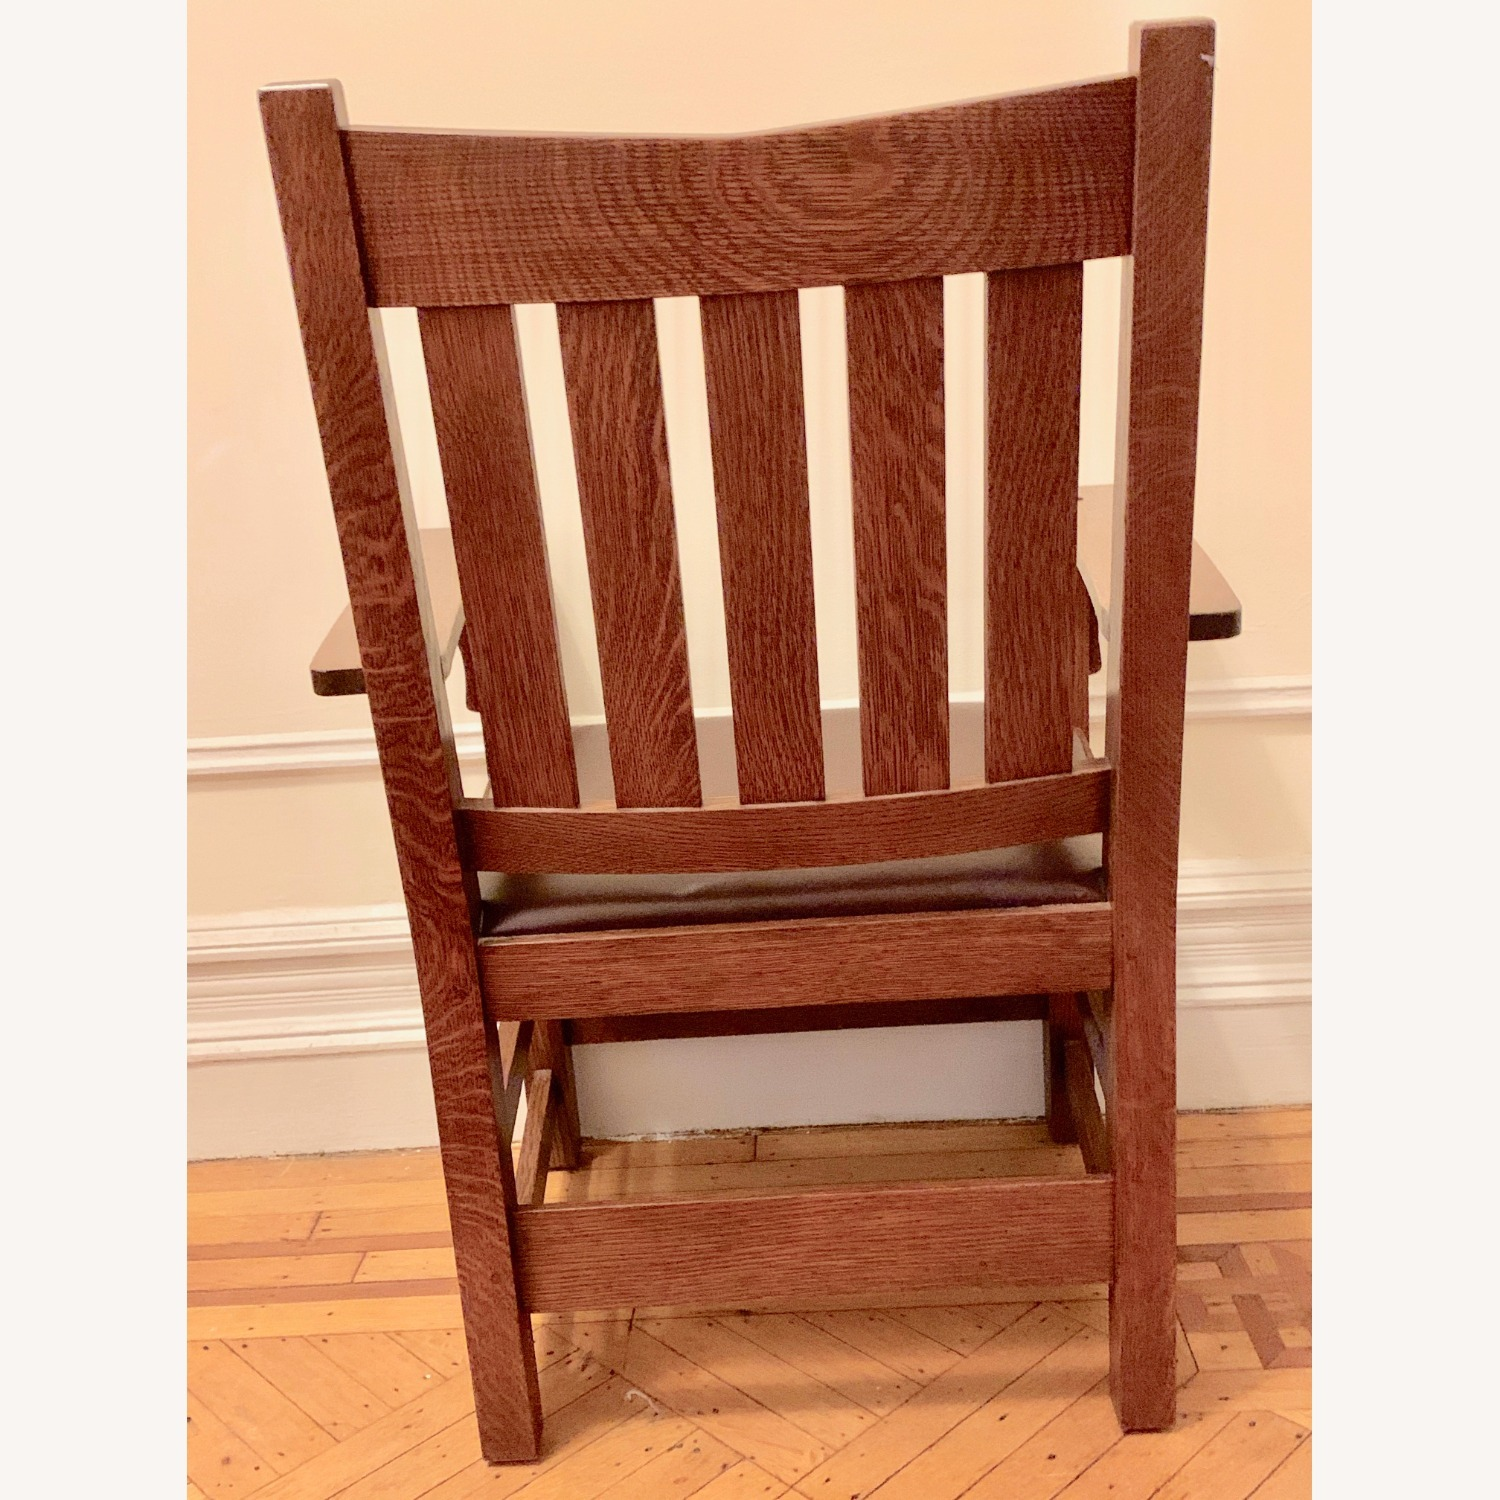 Stickley Mission Oak Chair with Leather Seat - image-5